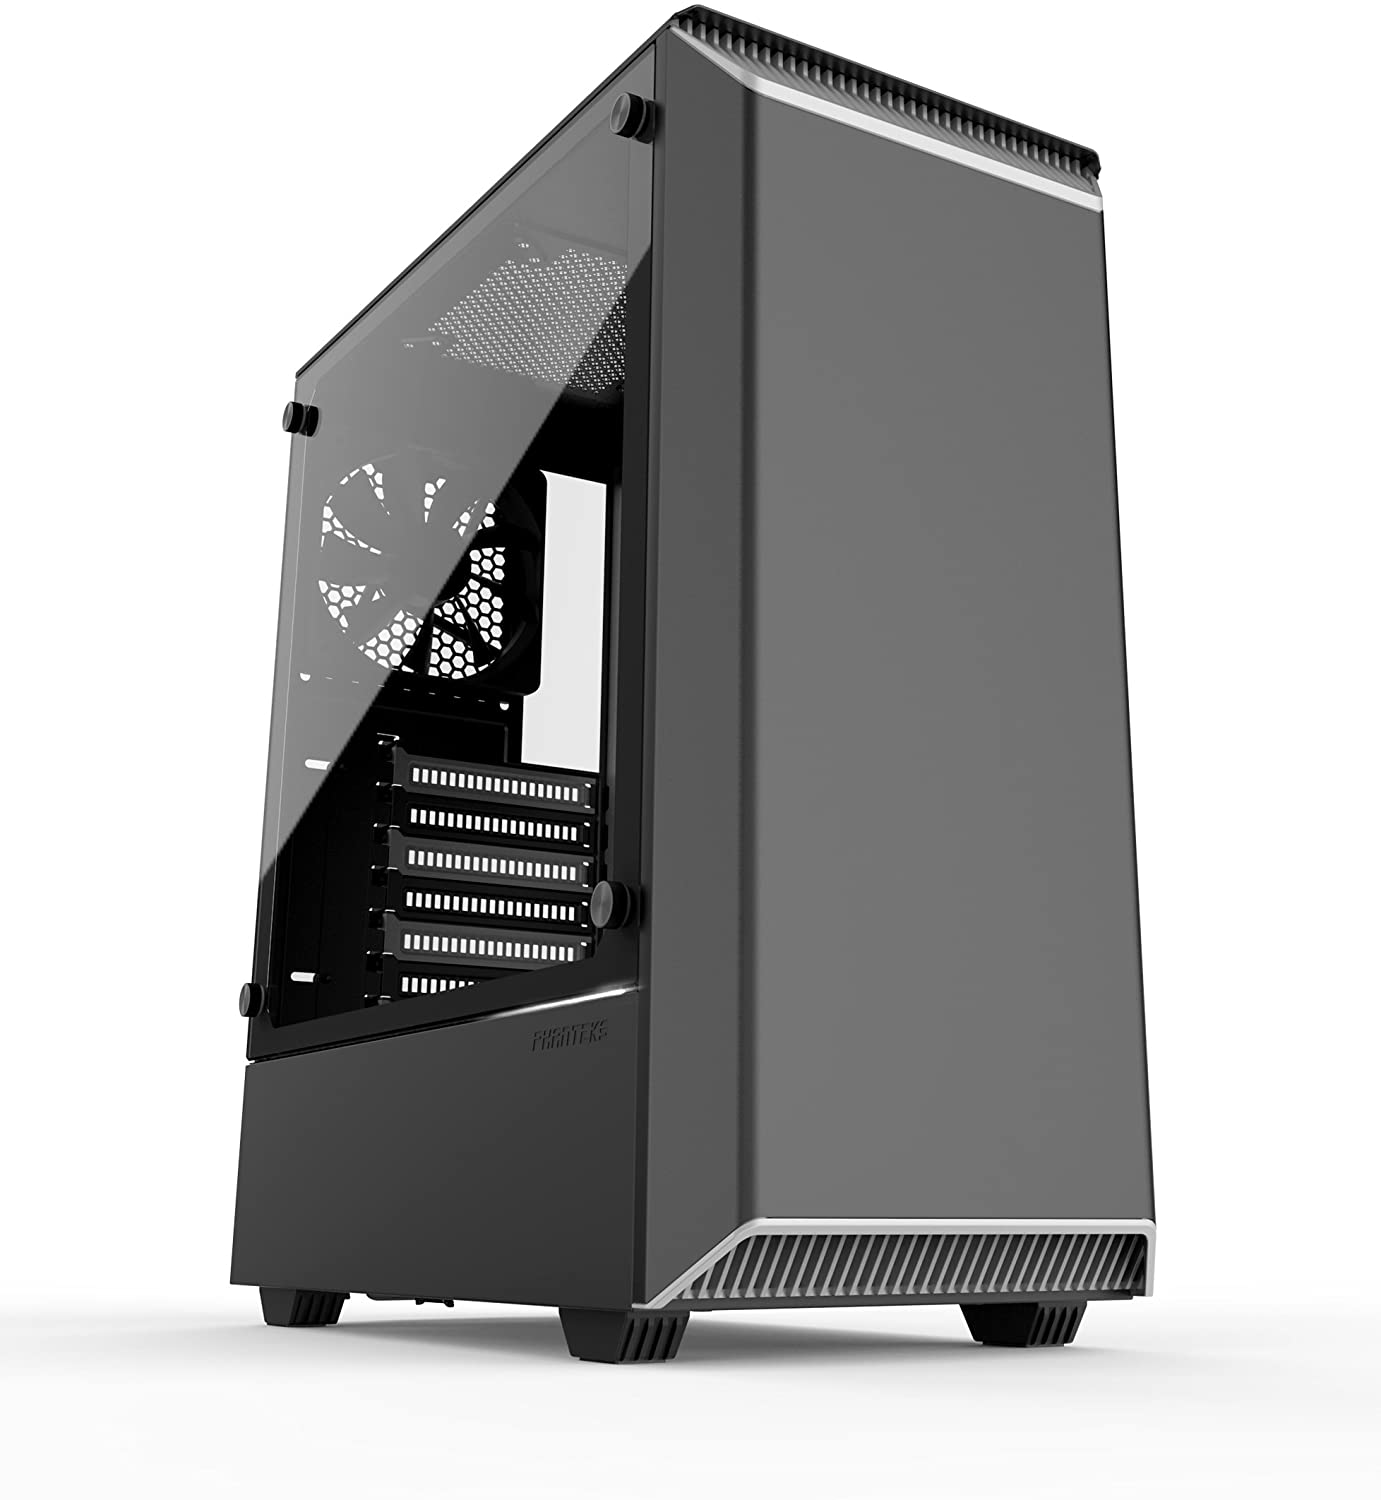 8 Case - Best $700 PC Build 2020